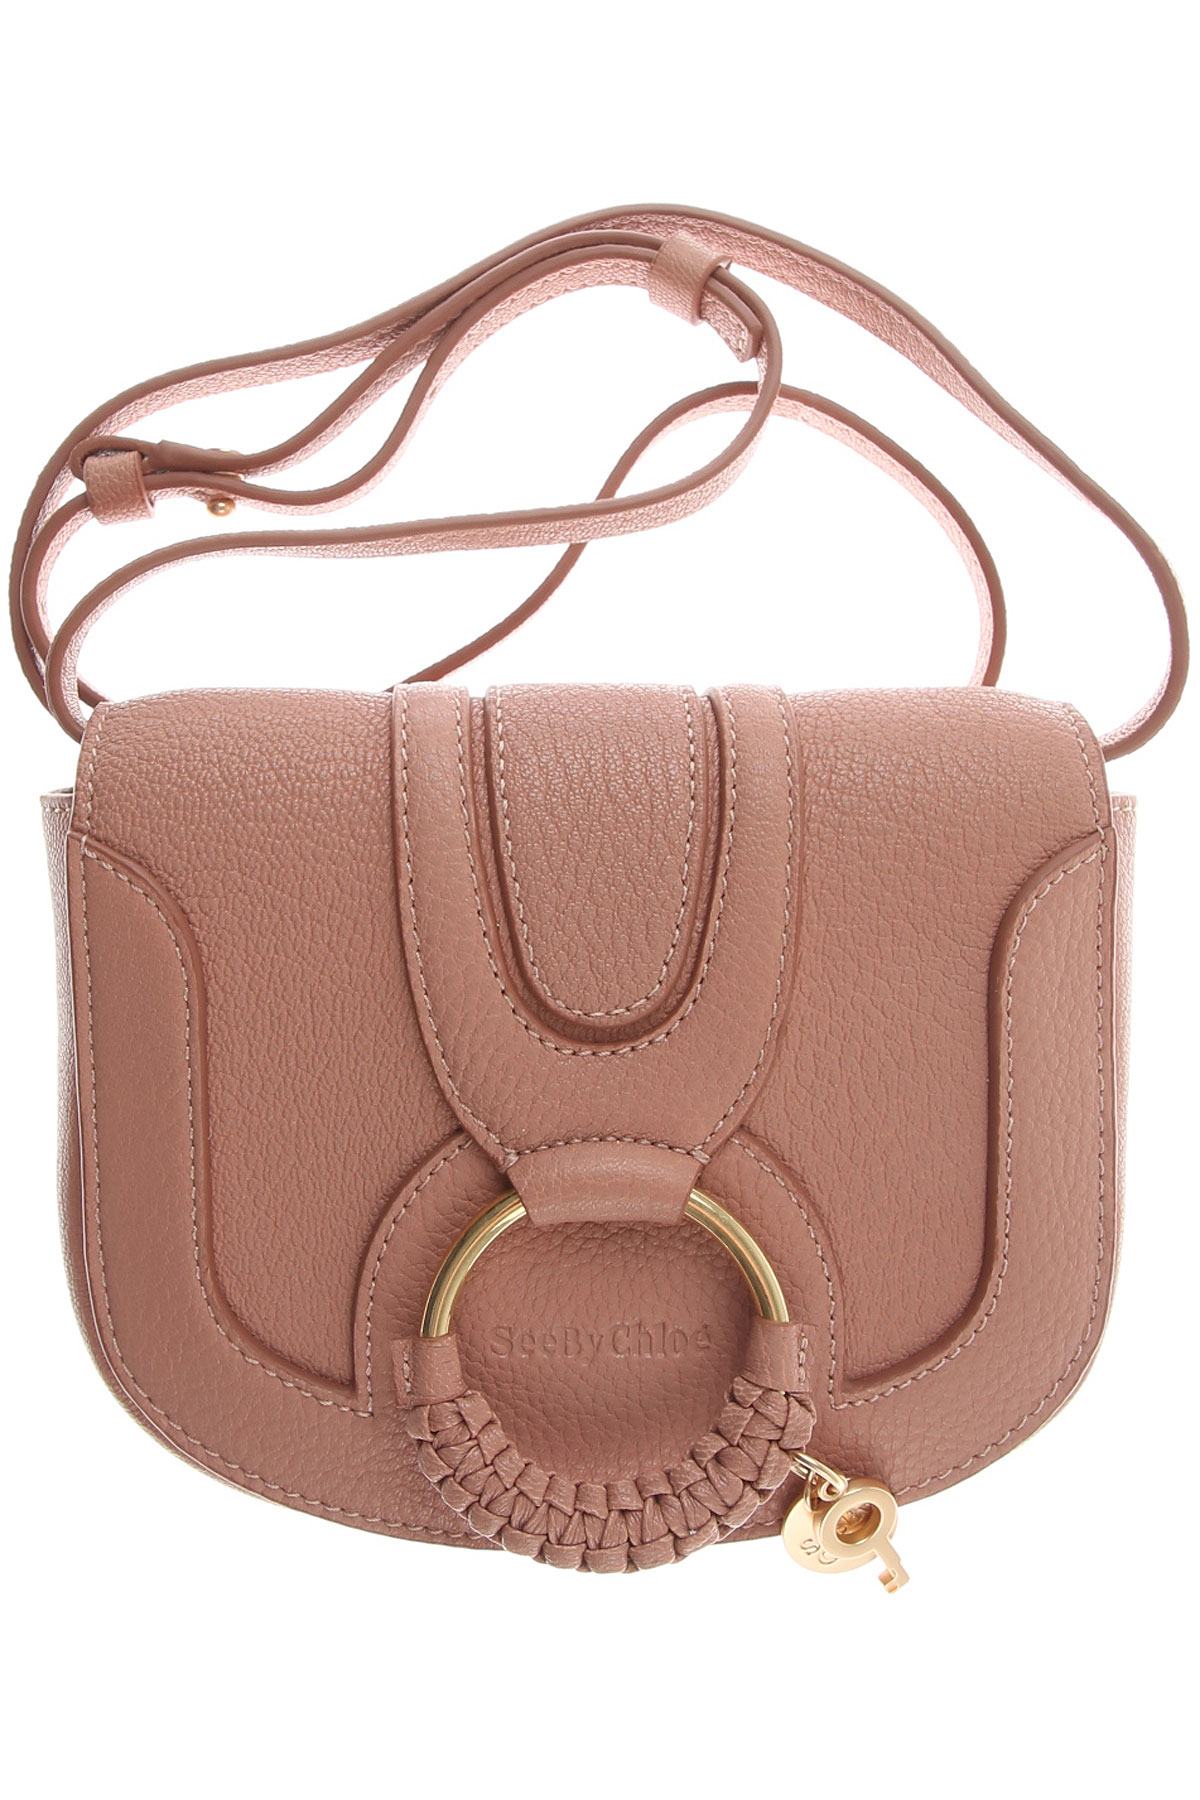 See By Chloe Shoulder Bag for Women, Dawn Rose, Leather, 2019